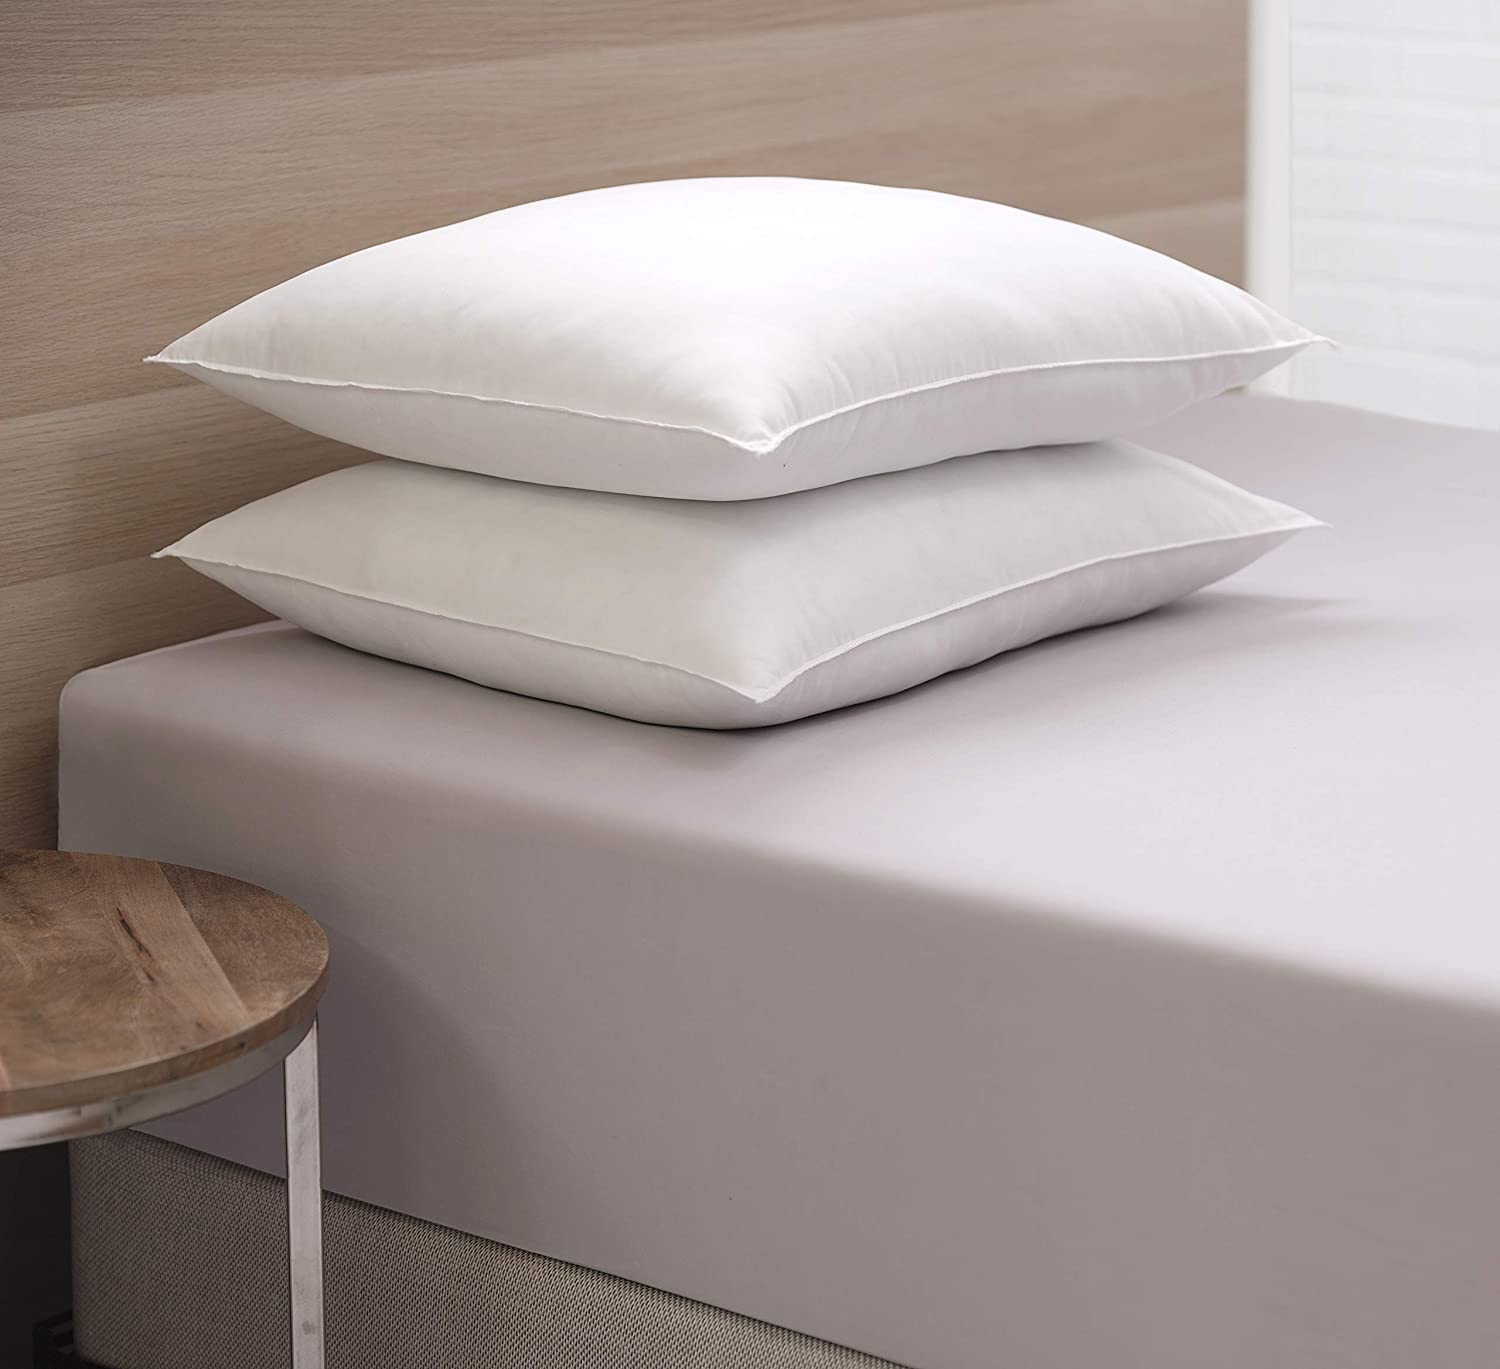 Allied Essentials AMPWBMI_9836L_QF Sleeping Hotel Pillows, Queen, White